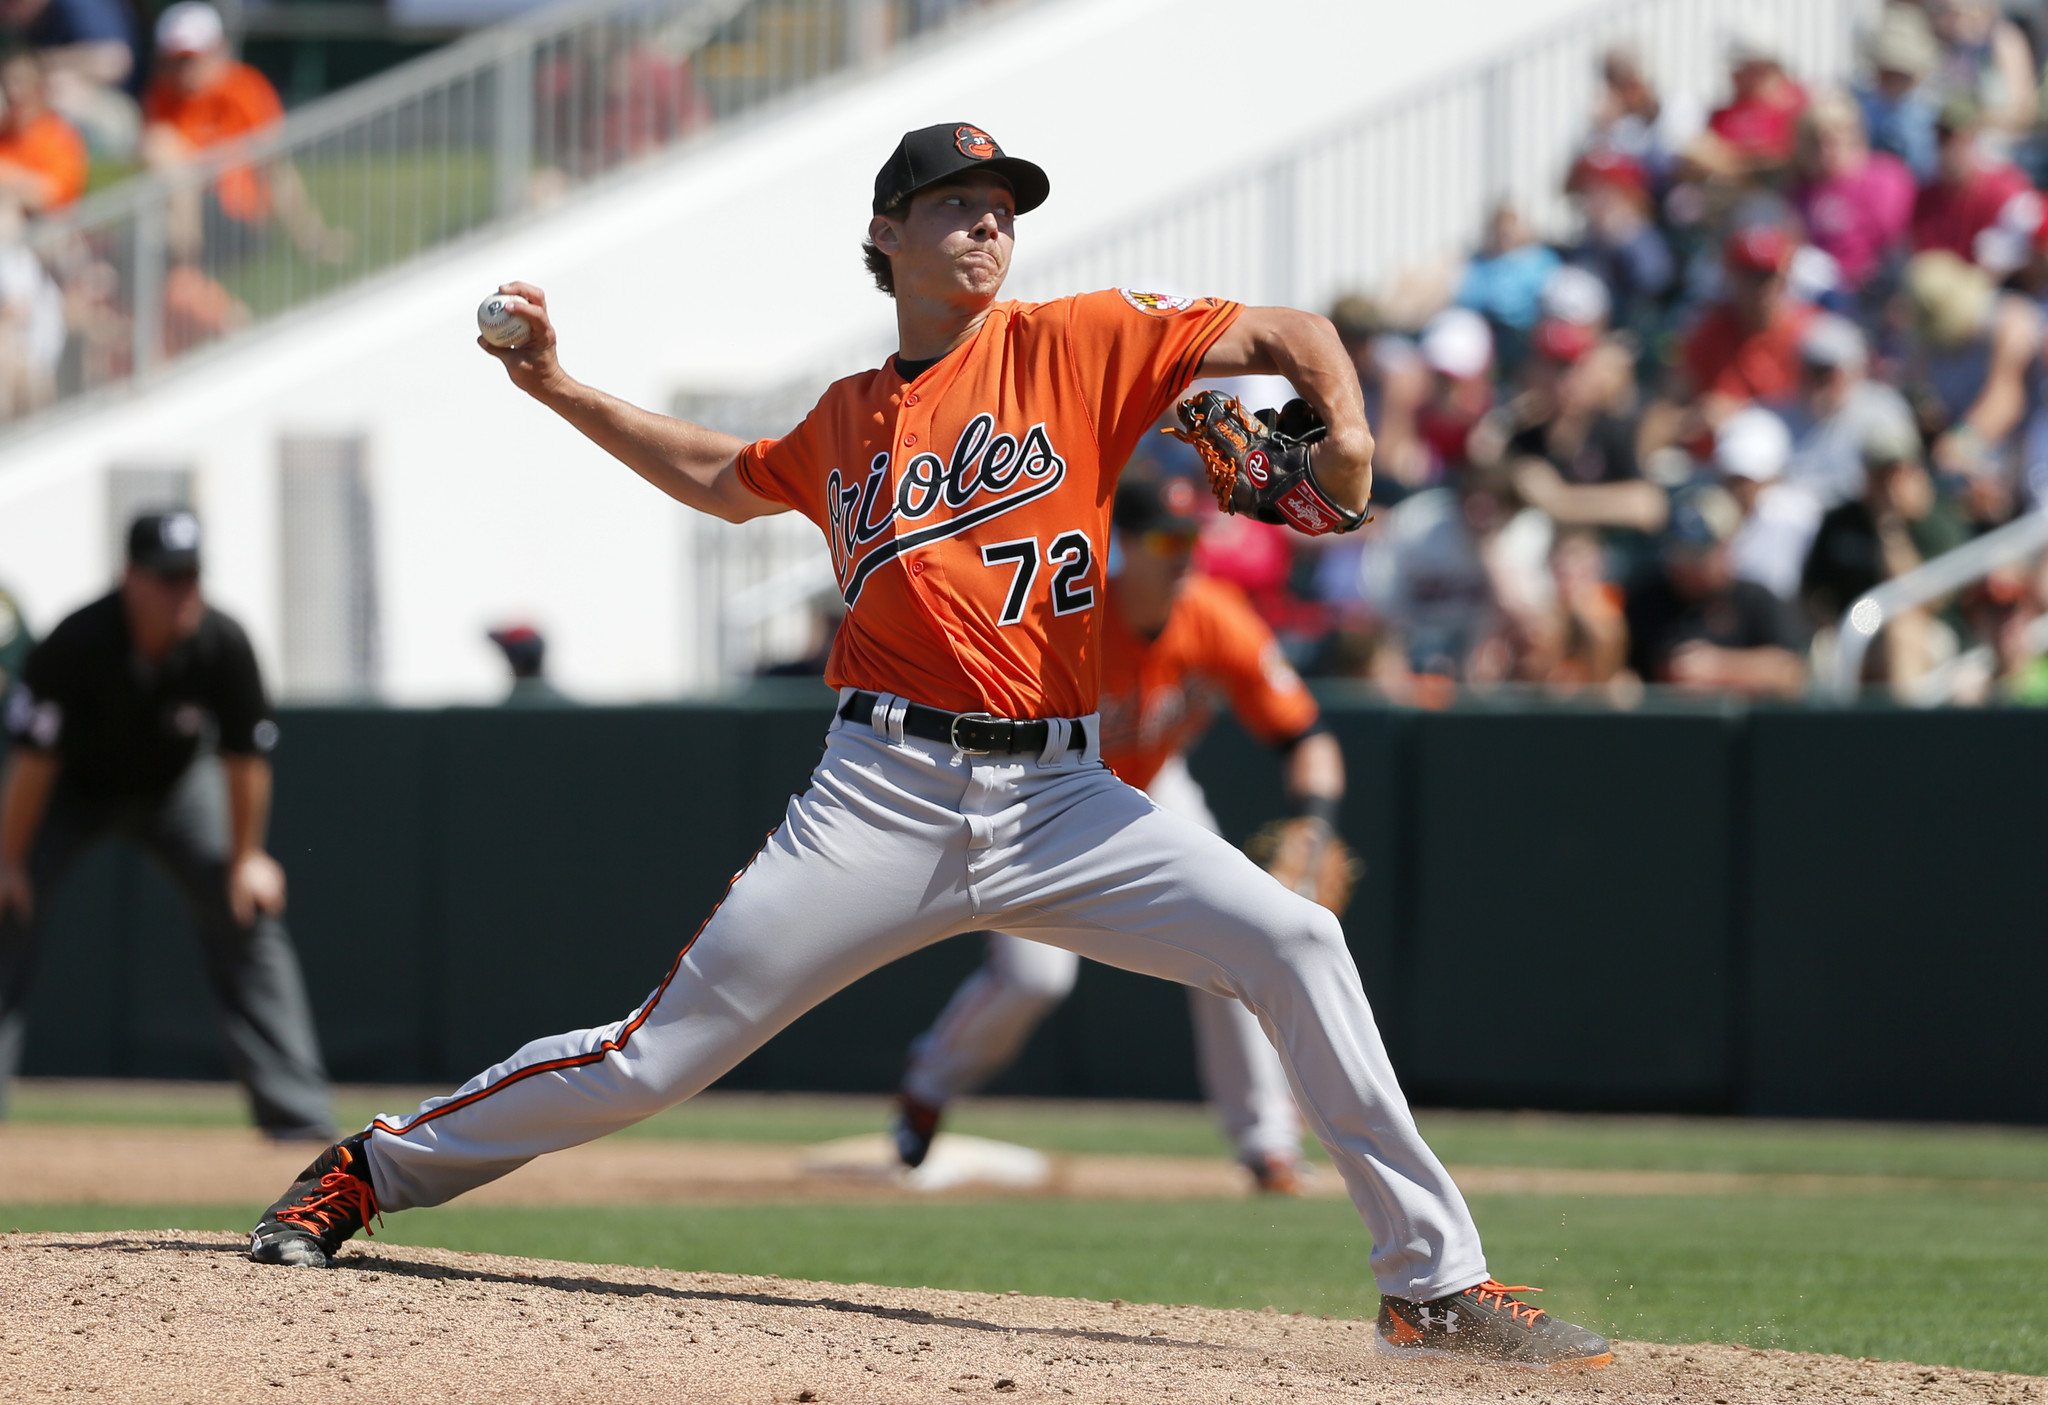 Bal-orioles-top-pitching-prospect-hunter-harvey-suffers-second-setback-with-groin-to-see-specialist-20160430